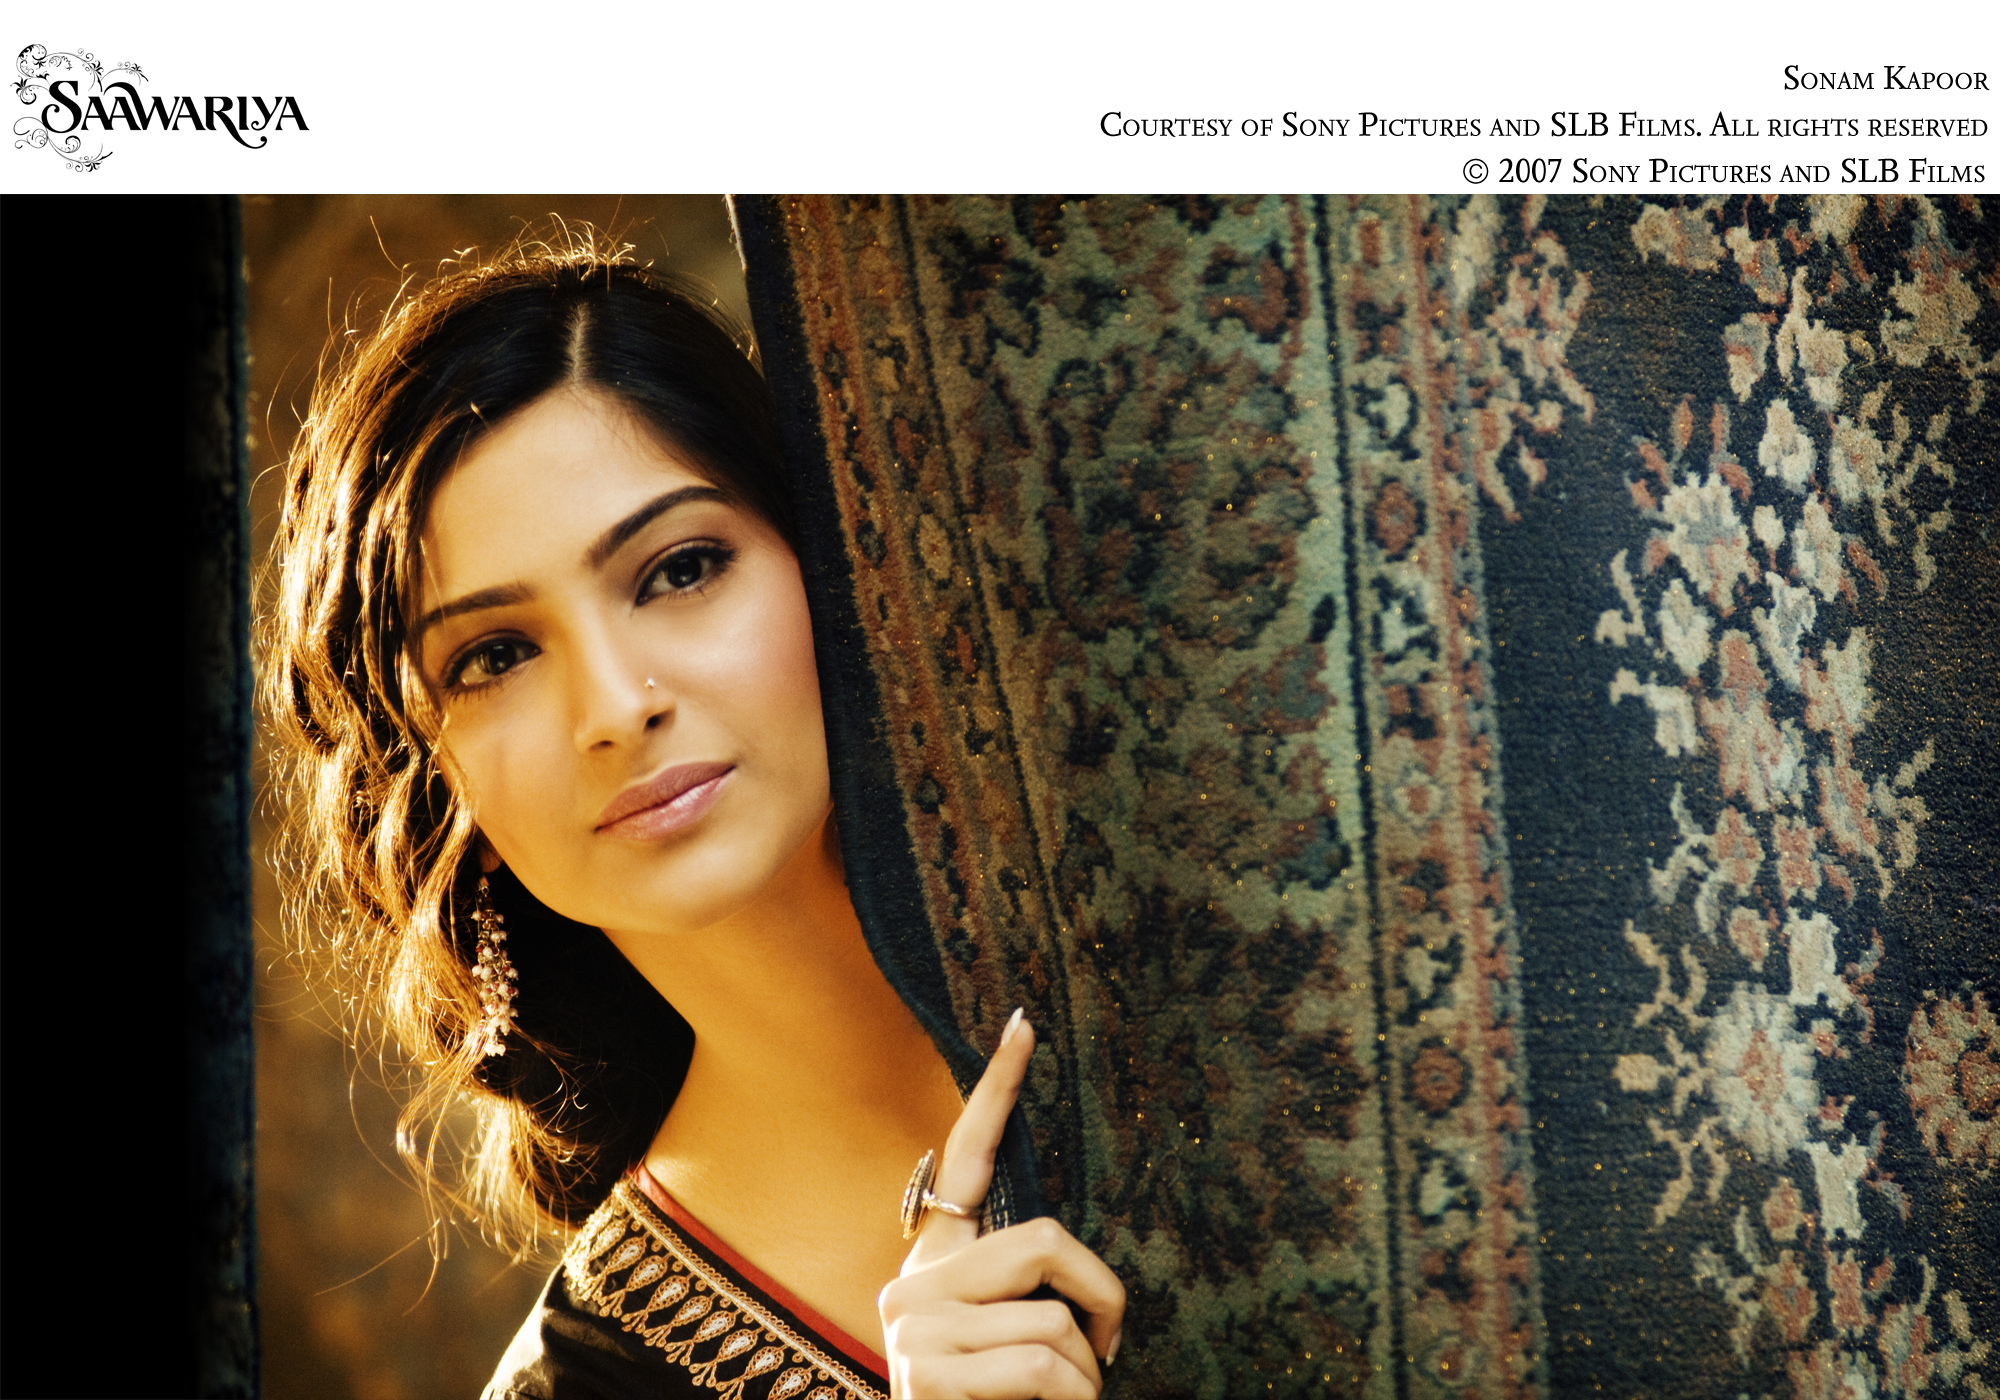 sonam kapoor images sonam hd wallpaper and background photos (27254511)